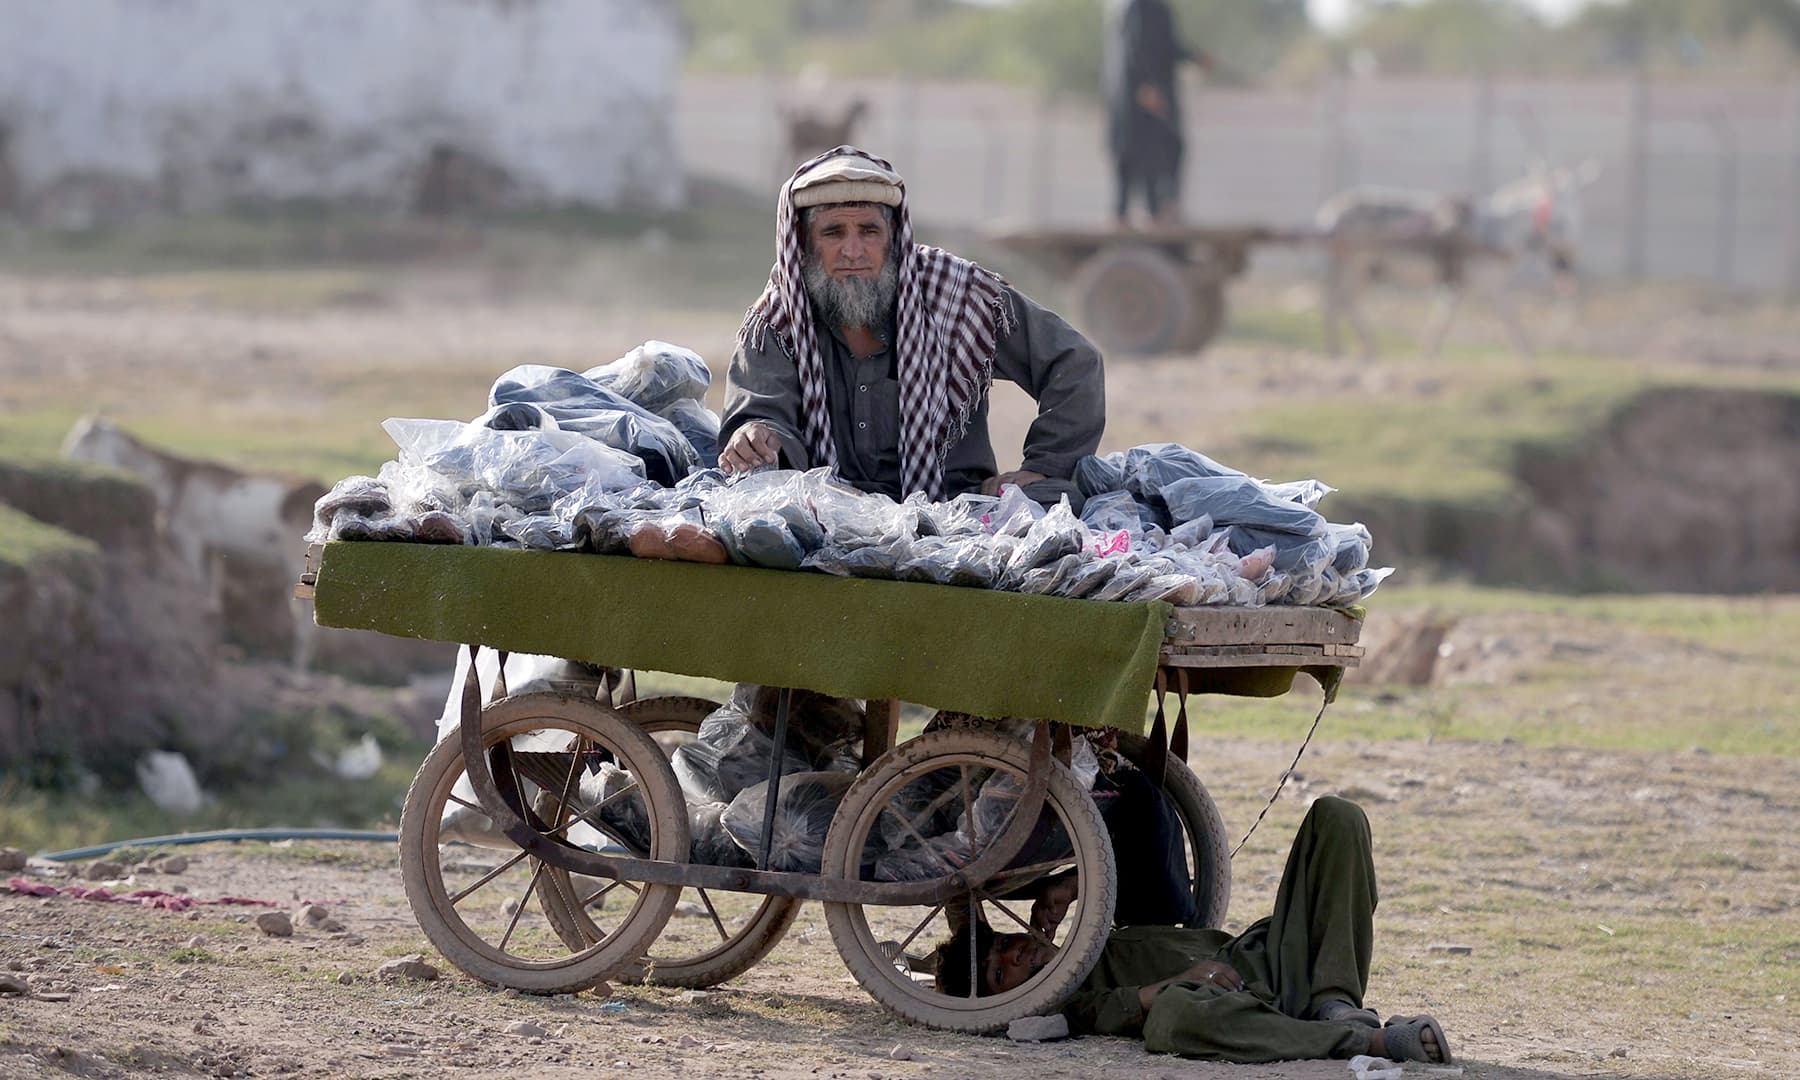 An Afghan refugee vendor stands with his cart of products at a refugee camp on the outskirts of Islamabad. — AFP